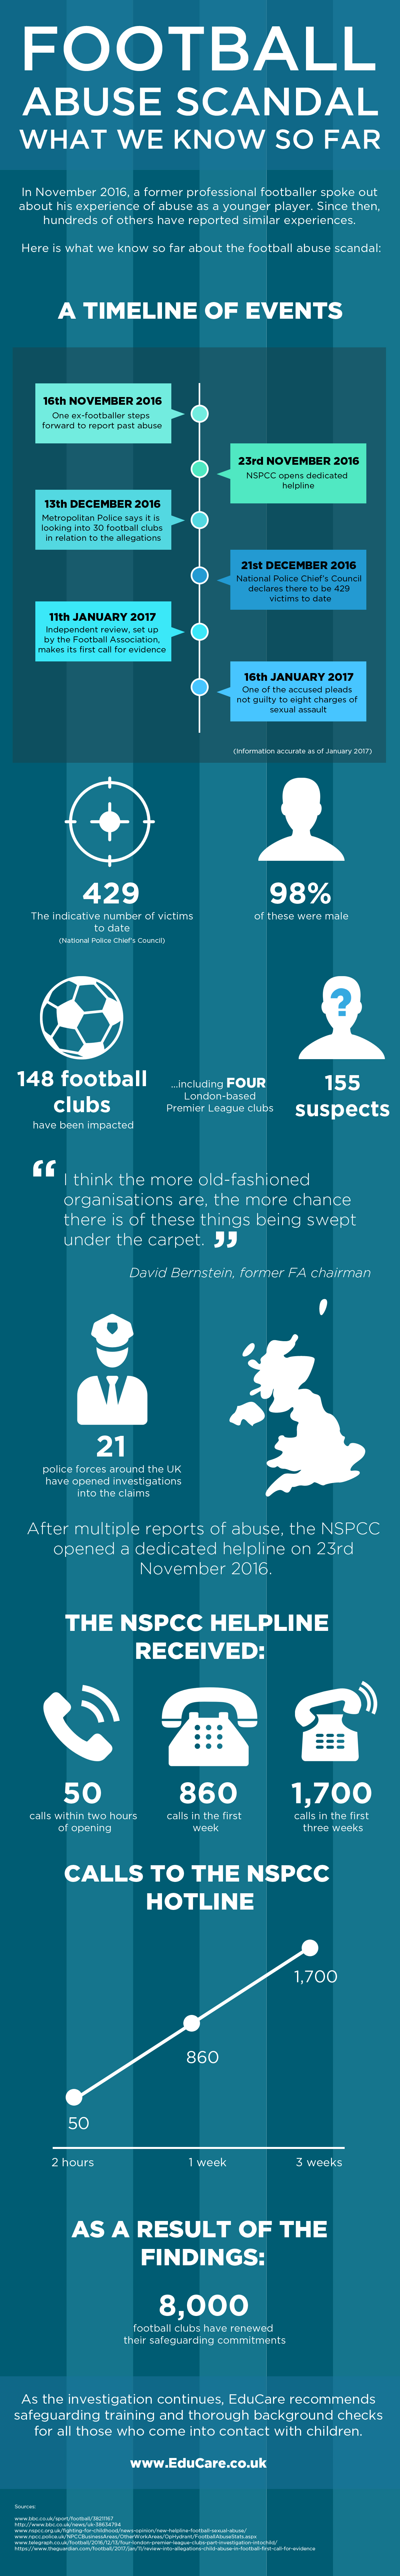 Infographic about the football abuse scandal in the UK